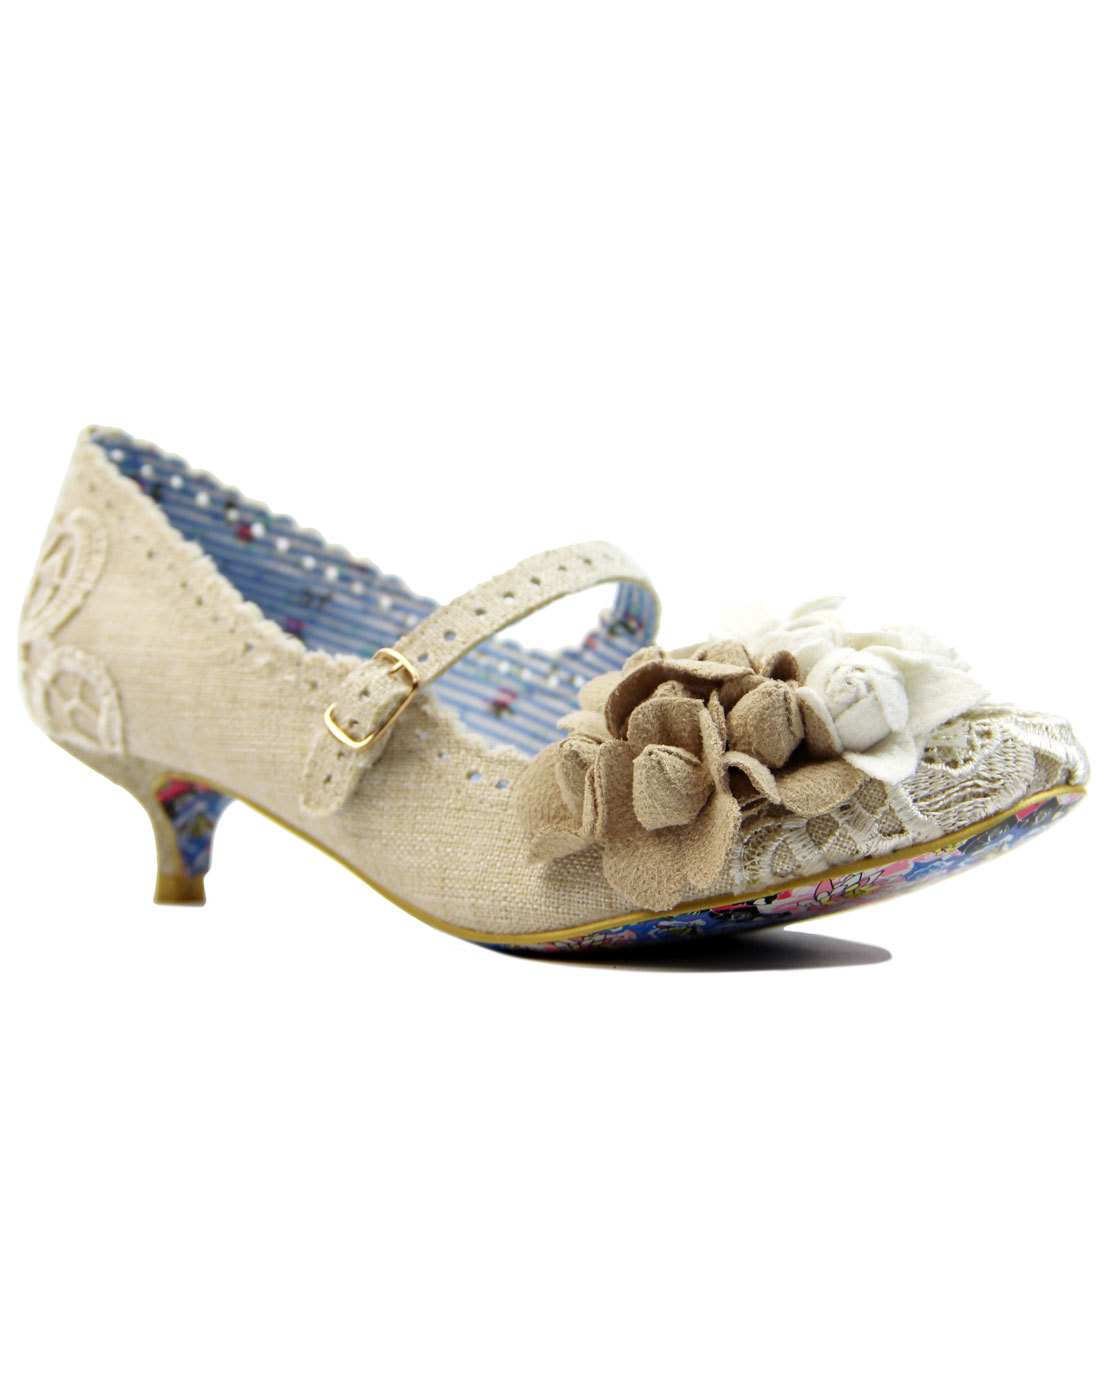 dca7234dace IRREGULAR CHOICE Daisy Dayz Retro 50s Hessian Flower Kitten Heels